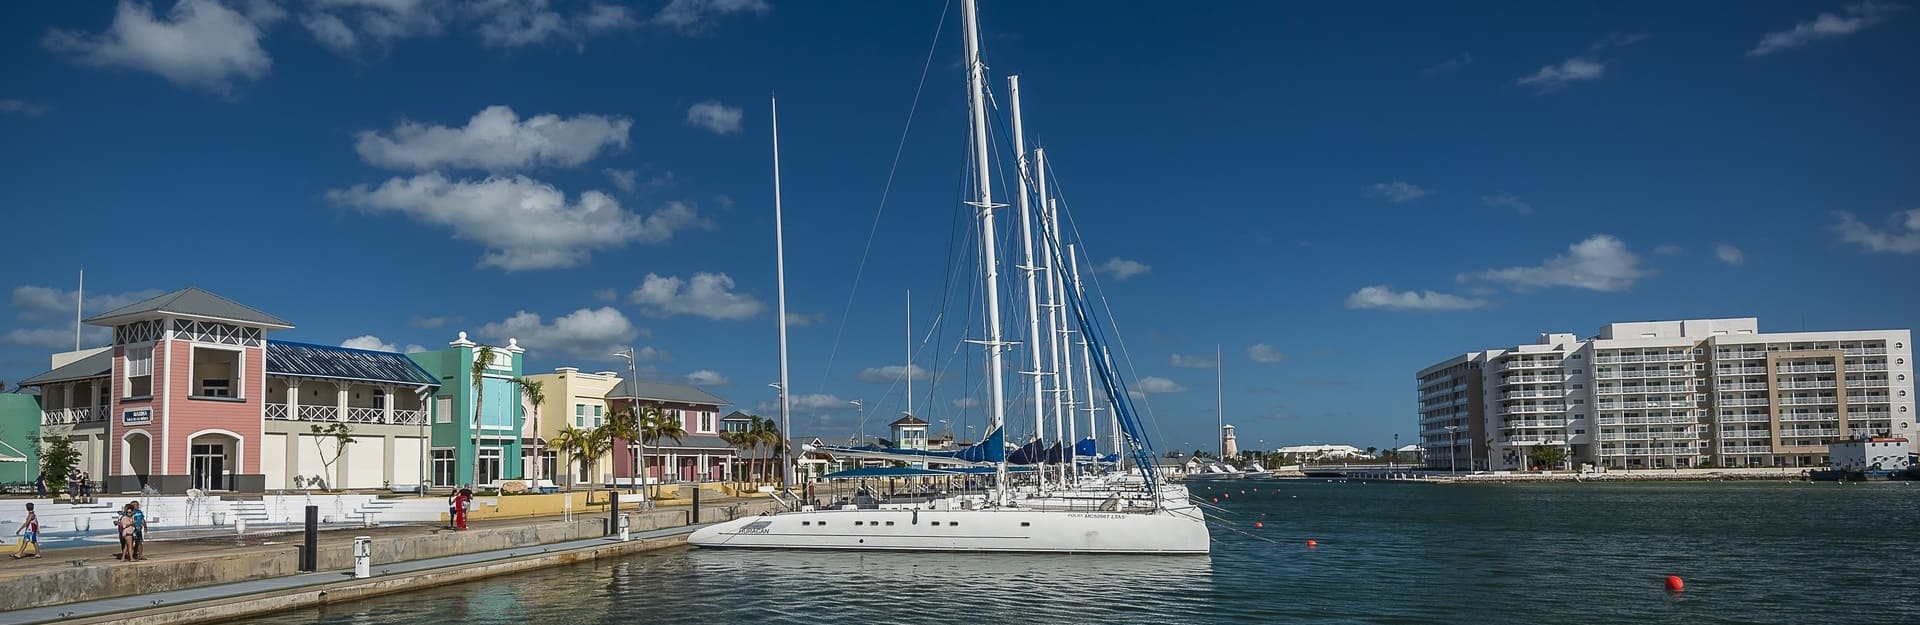 Gaviota International Marina, Varadero, Cuba